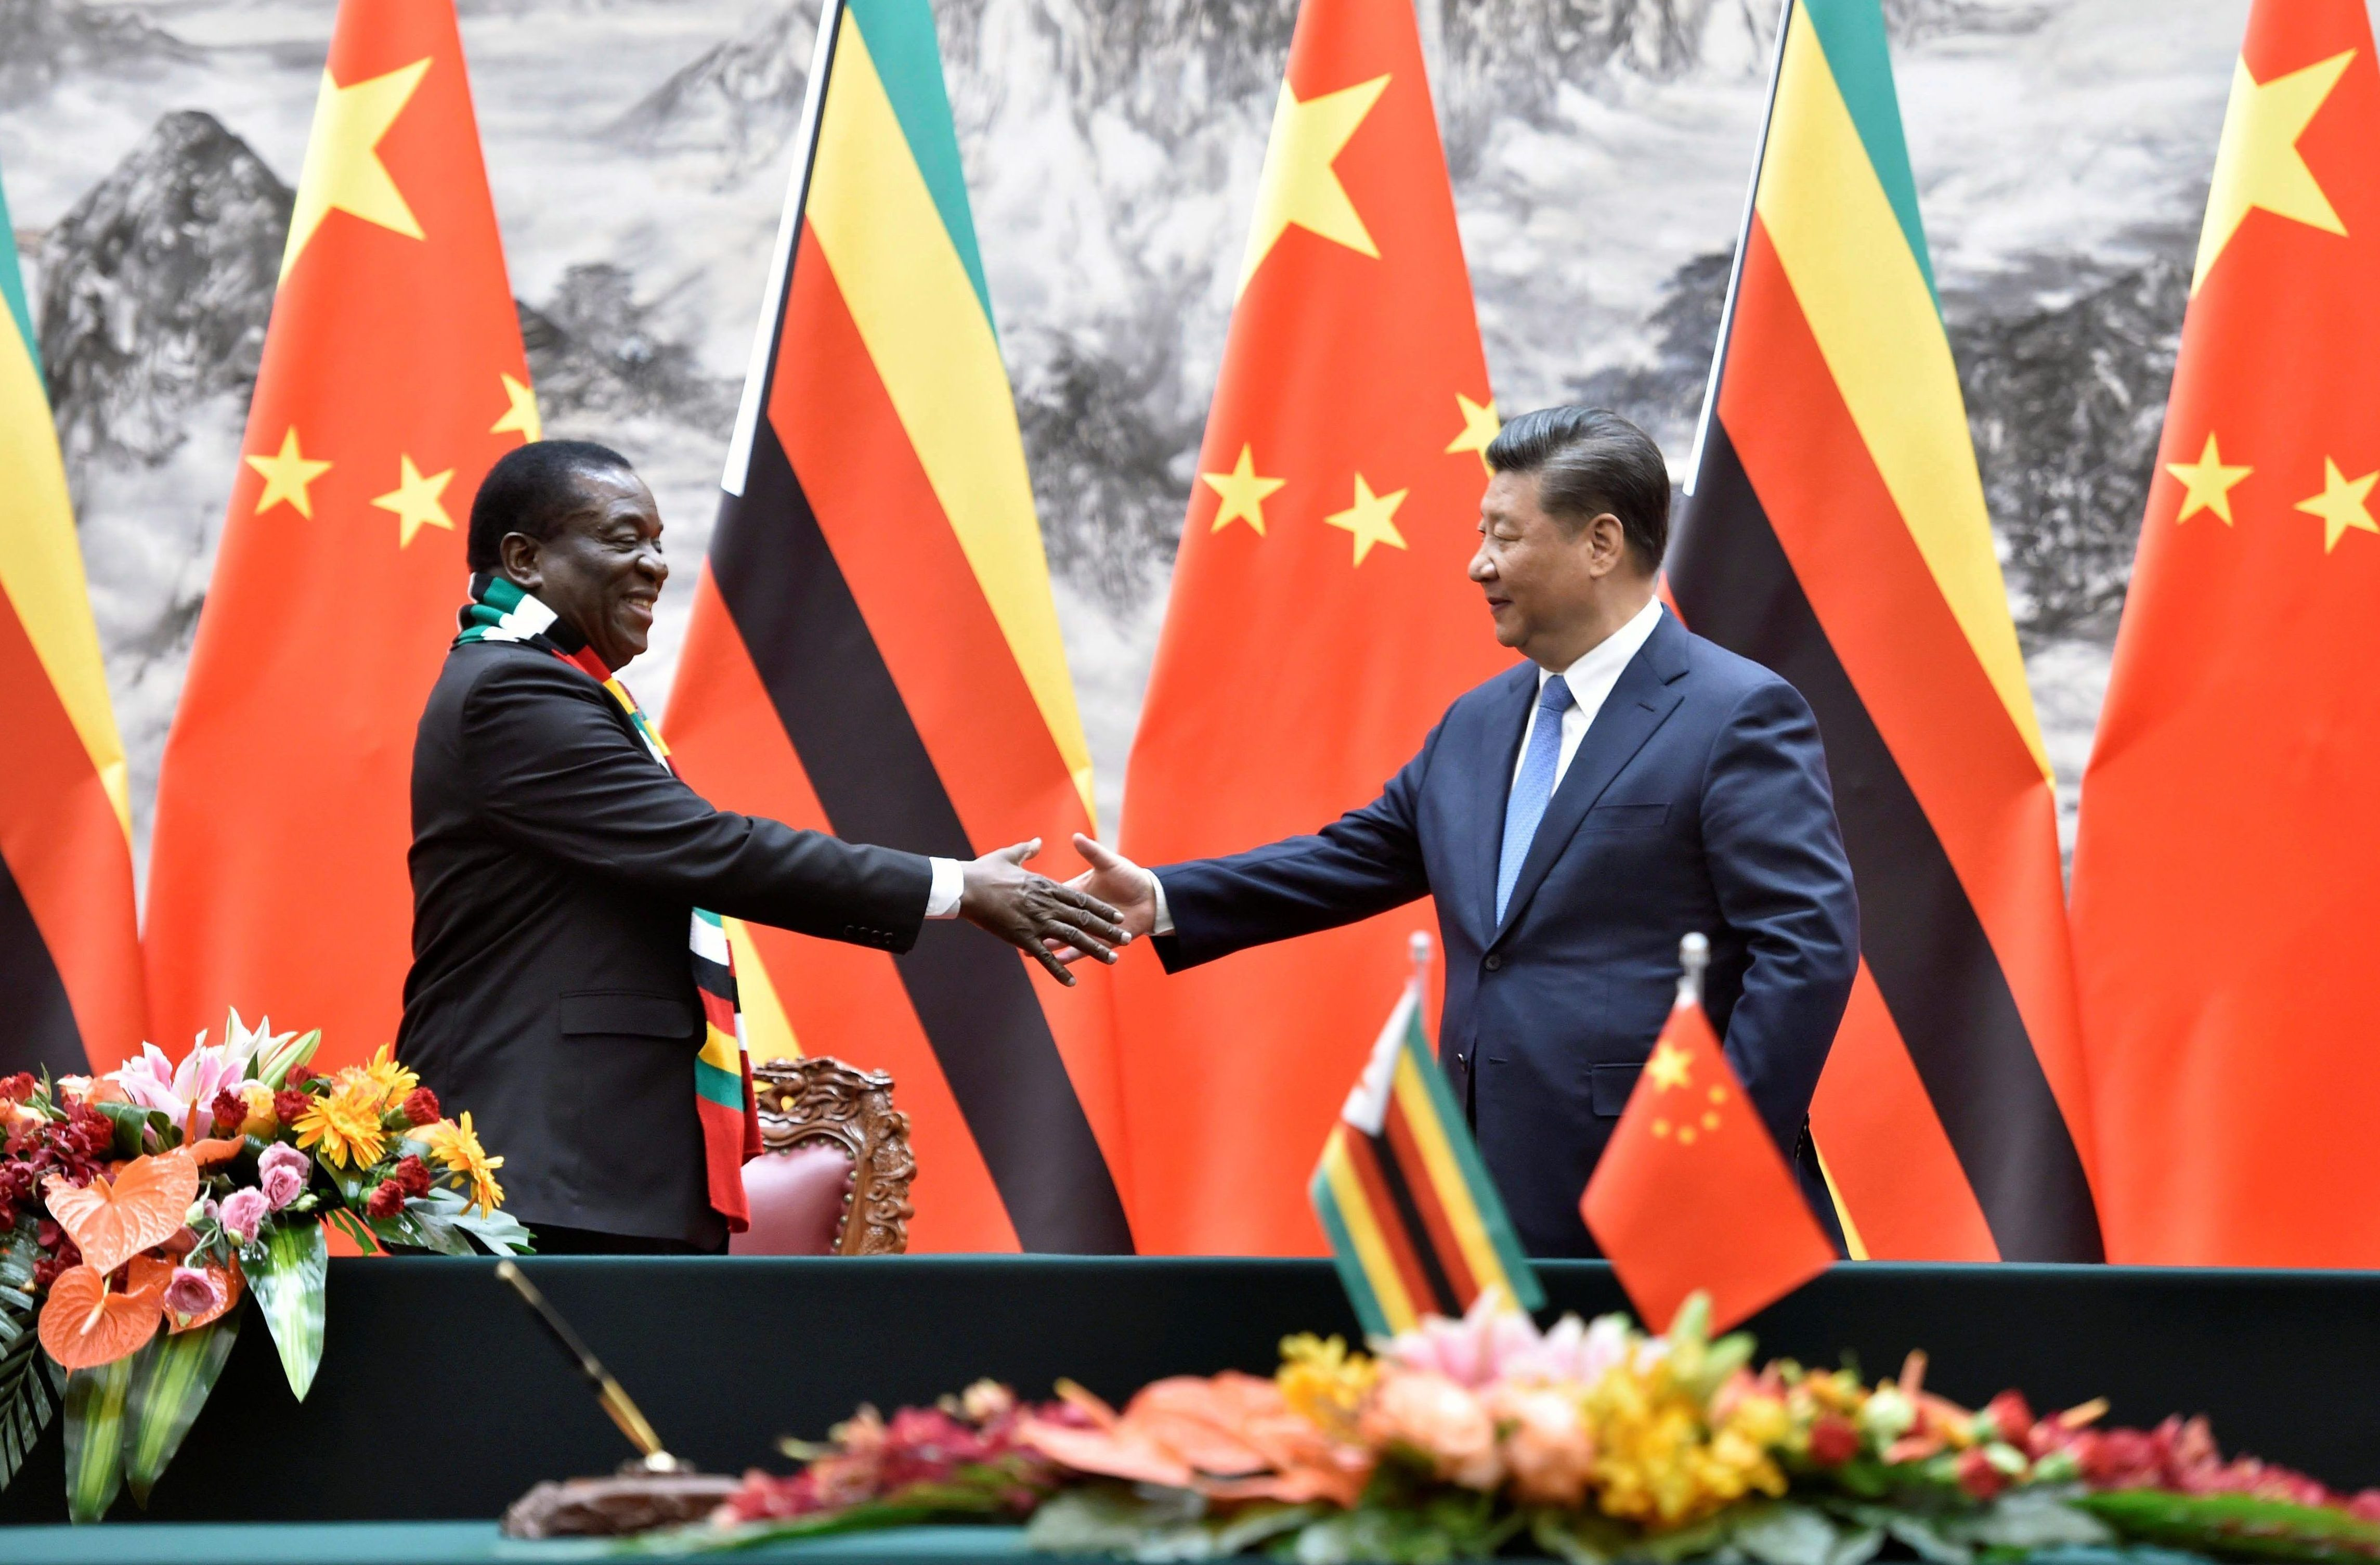 Chinese President Xi Jinping attempts to shake hands with Zimbabwean President Emmerson Mnangagwa after a signing ceremony at the Great Hall of the People in Beijing